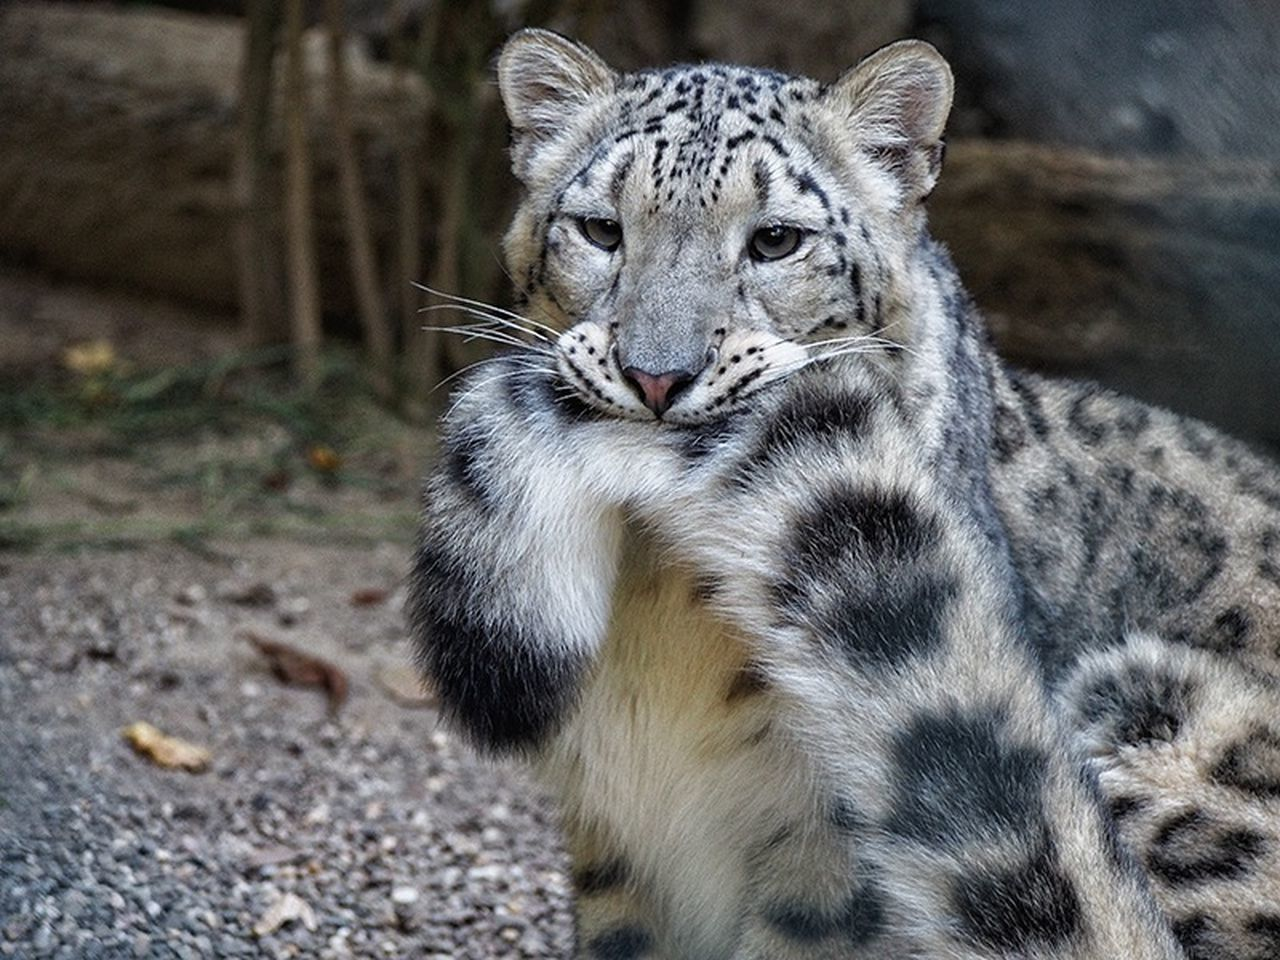 animals in the wild, one animal, animal themes, animal wildlife, mammal, portrait, looking at camera, no people, outdoors, day, leopard, safari animals, nature, close-up